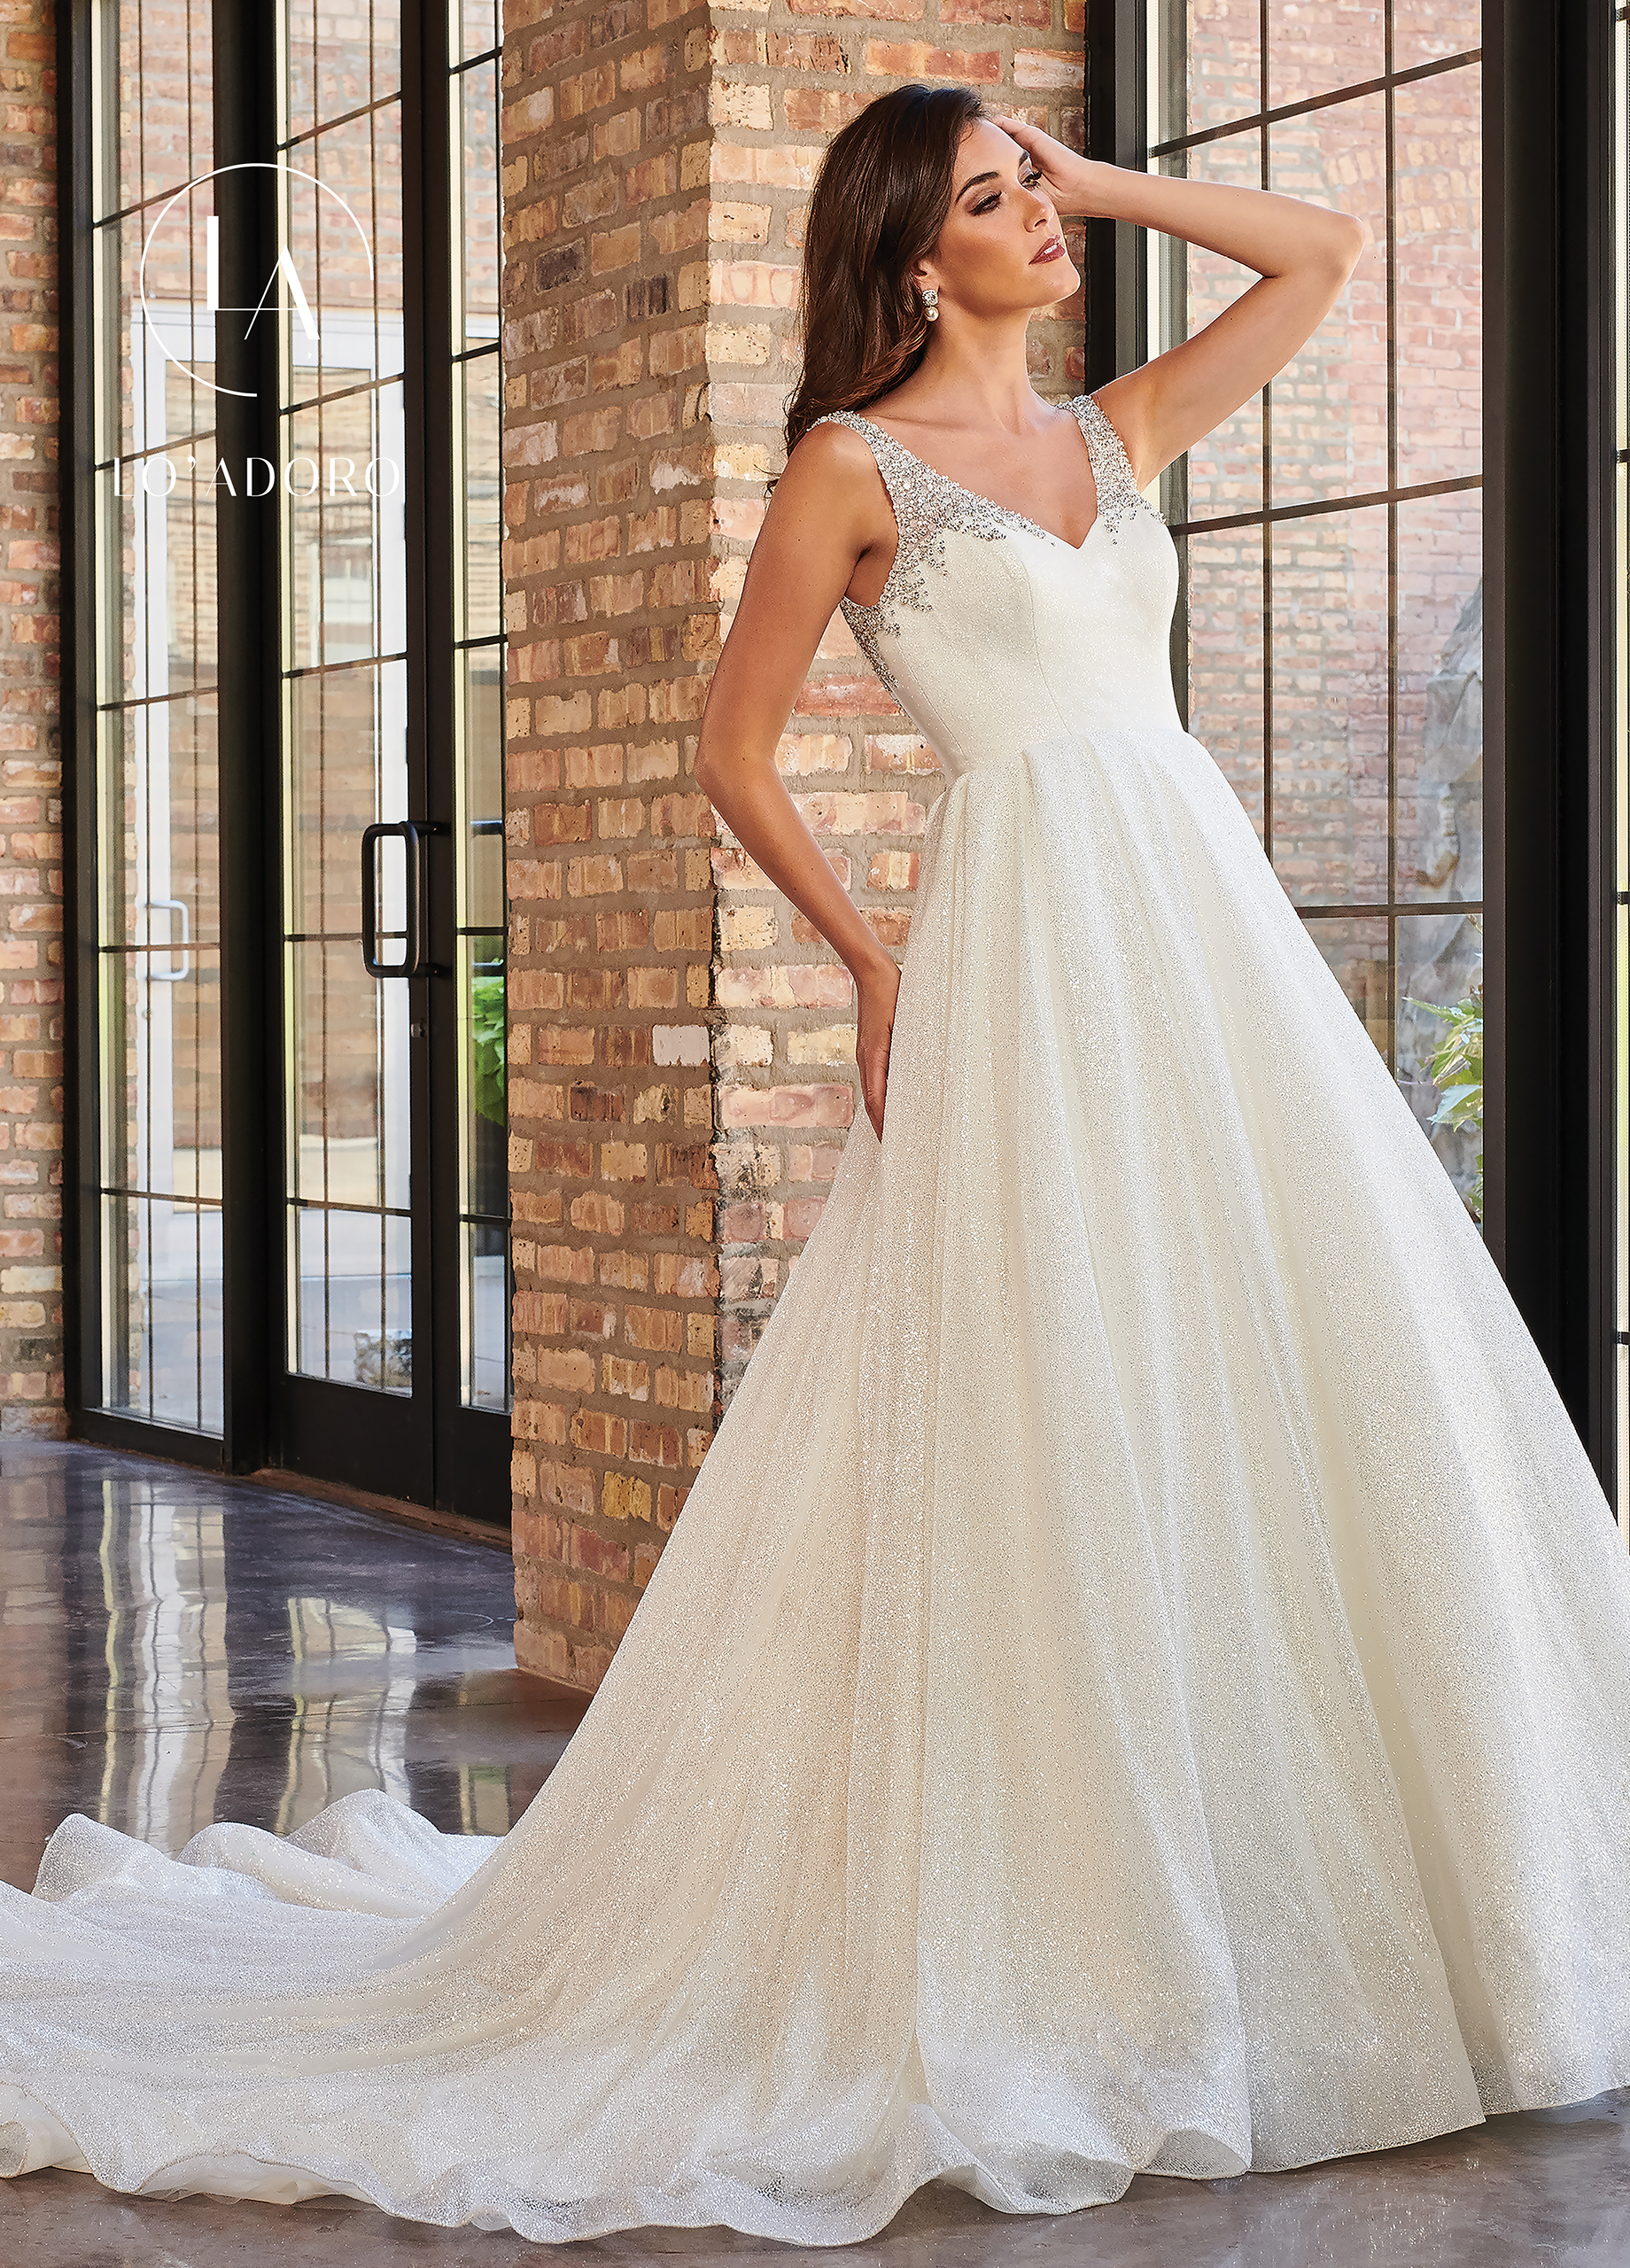 V-Neck Ball Gowns Lo' Adoro Couture BRIDAL in White Color